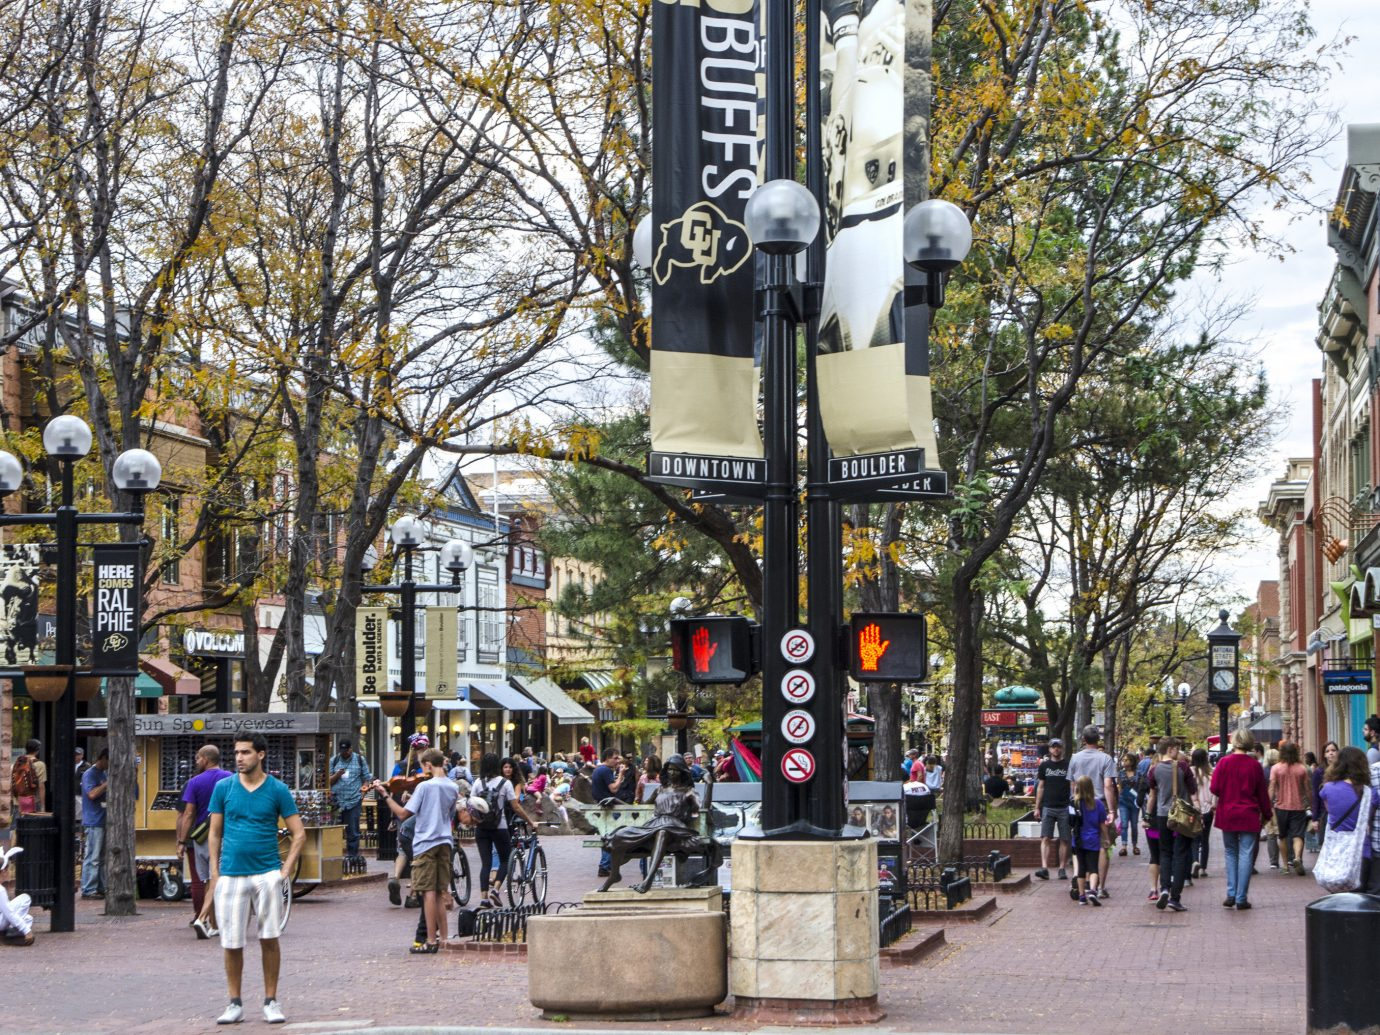 Trip Ideas Town urban area tree City street pedestrian Downtown neighbourhood recreation